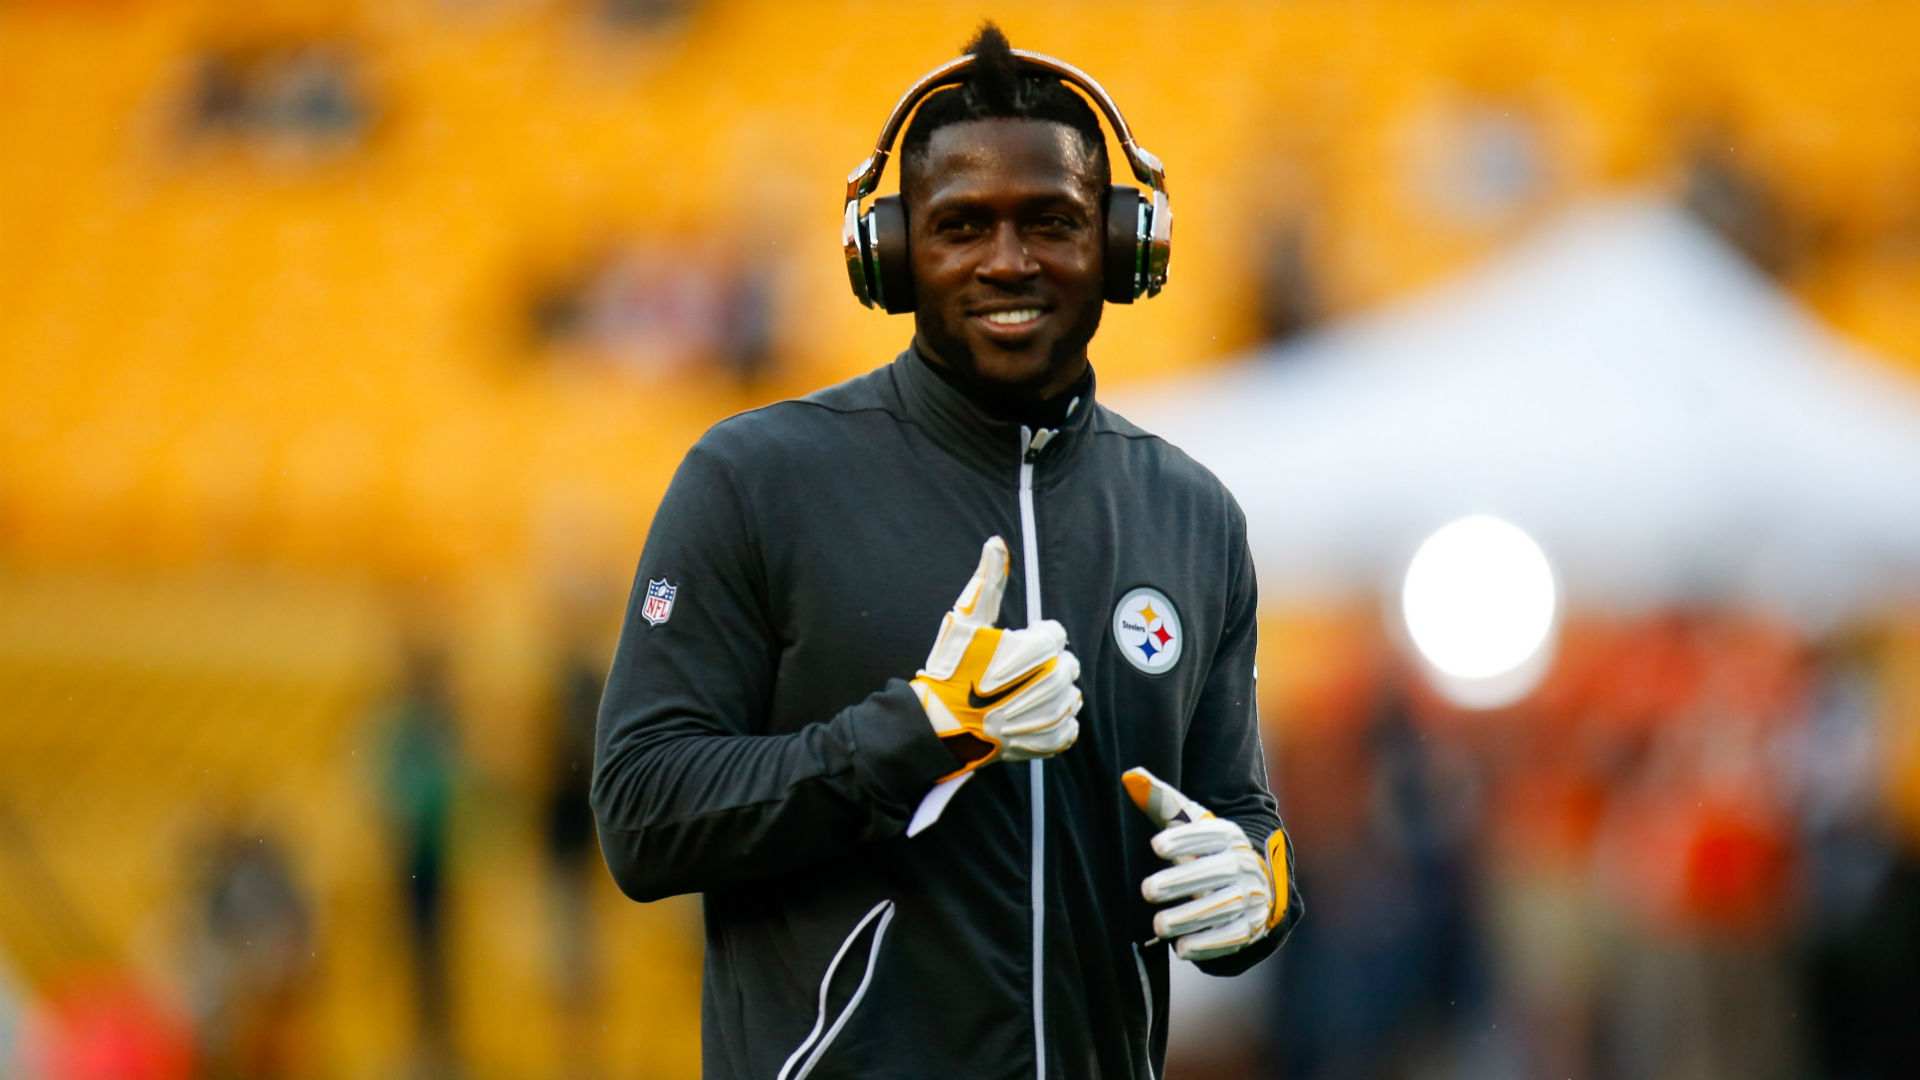 antonio brown - photo #3